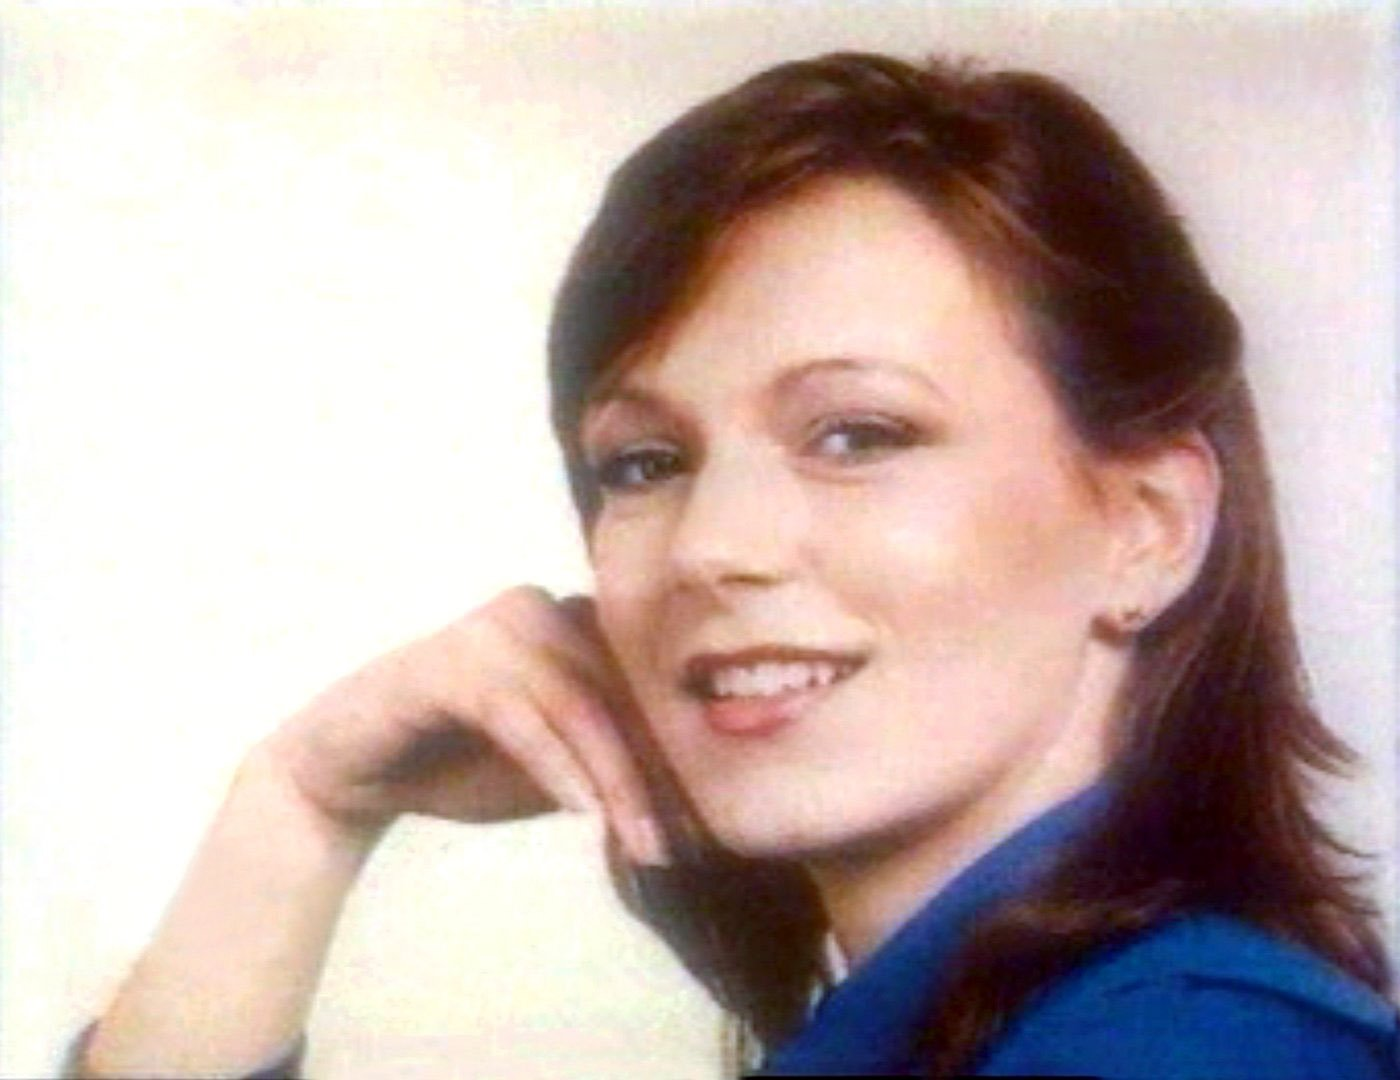 Mandatory Credit: Photo by REX/Shutterstock (395860d) ESTATE AGENT SUZY LAMPLUGH WHO DISAPPEARED IN JULY 1986 AND IS BELIEVED TO HAVE BEEN MURDERED. SUZY LAMPLUGH RETROSPECTIVE